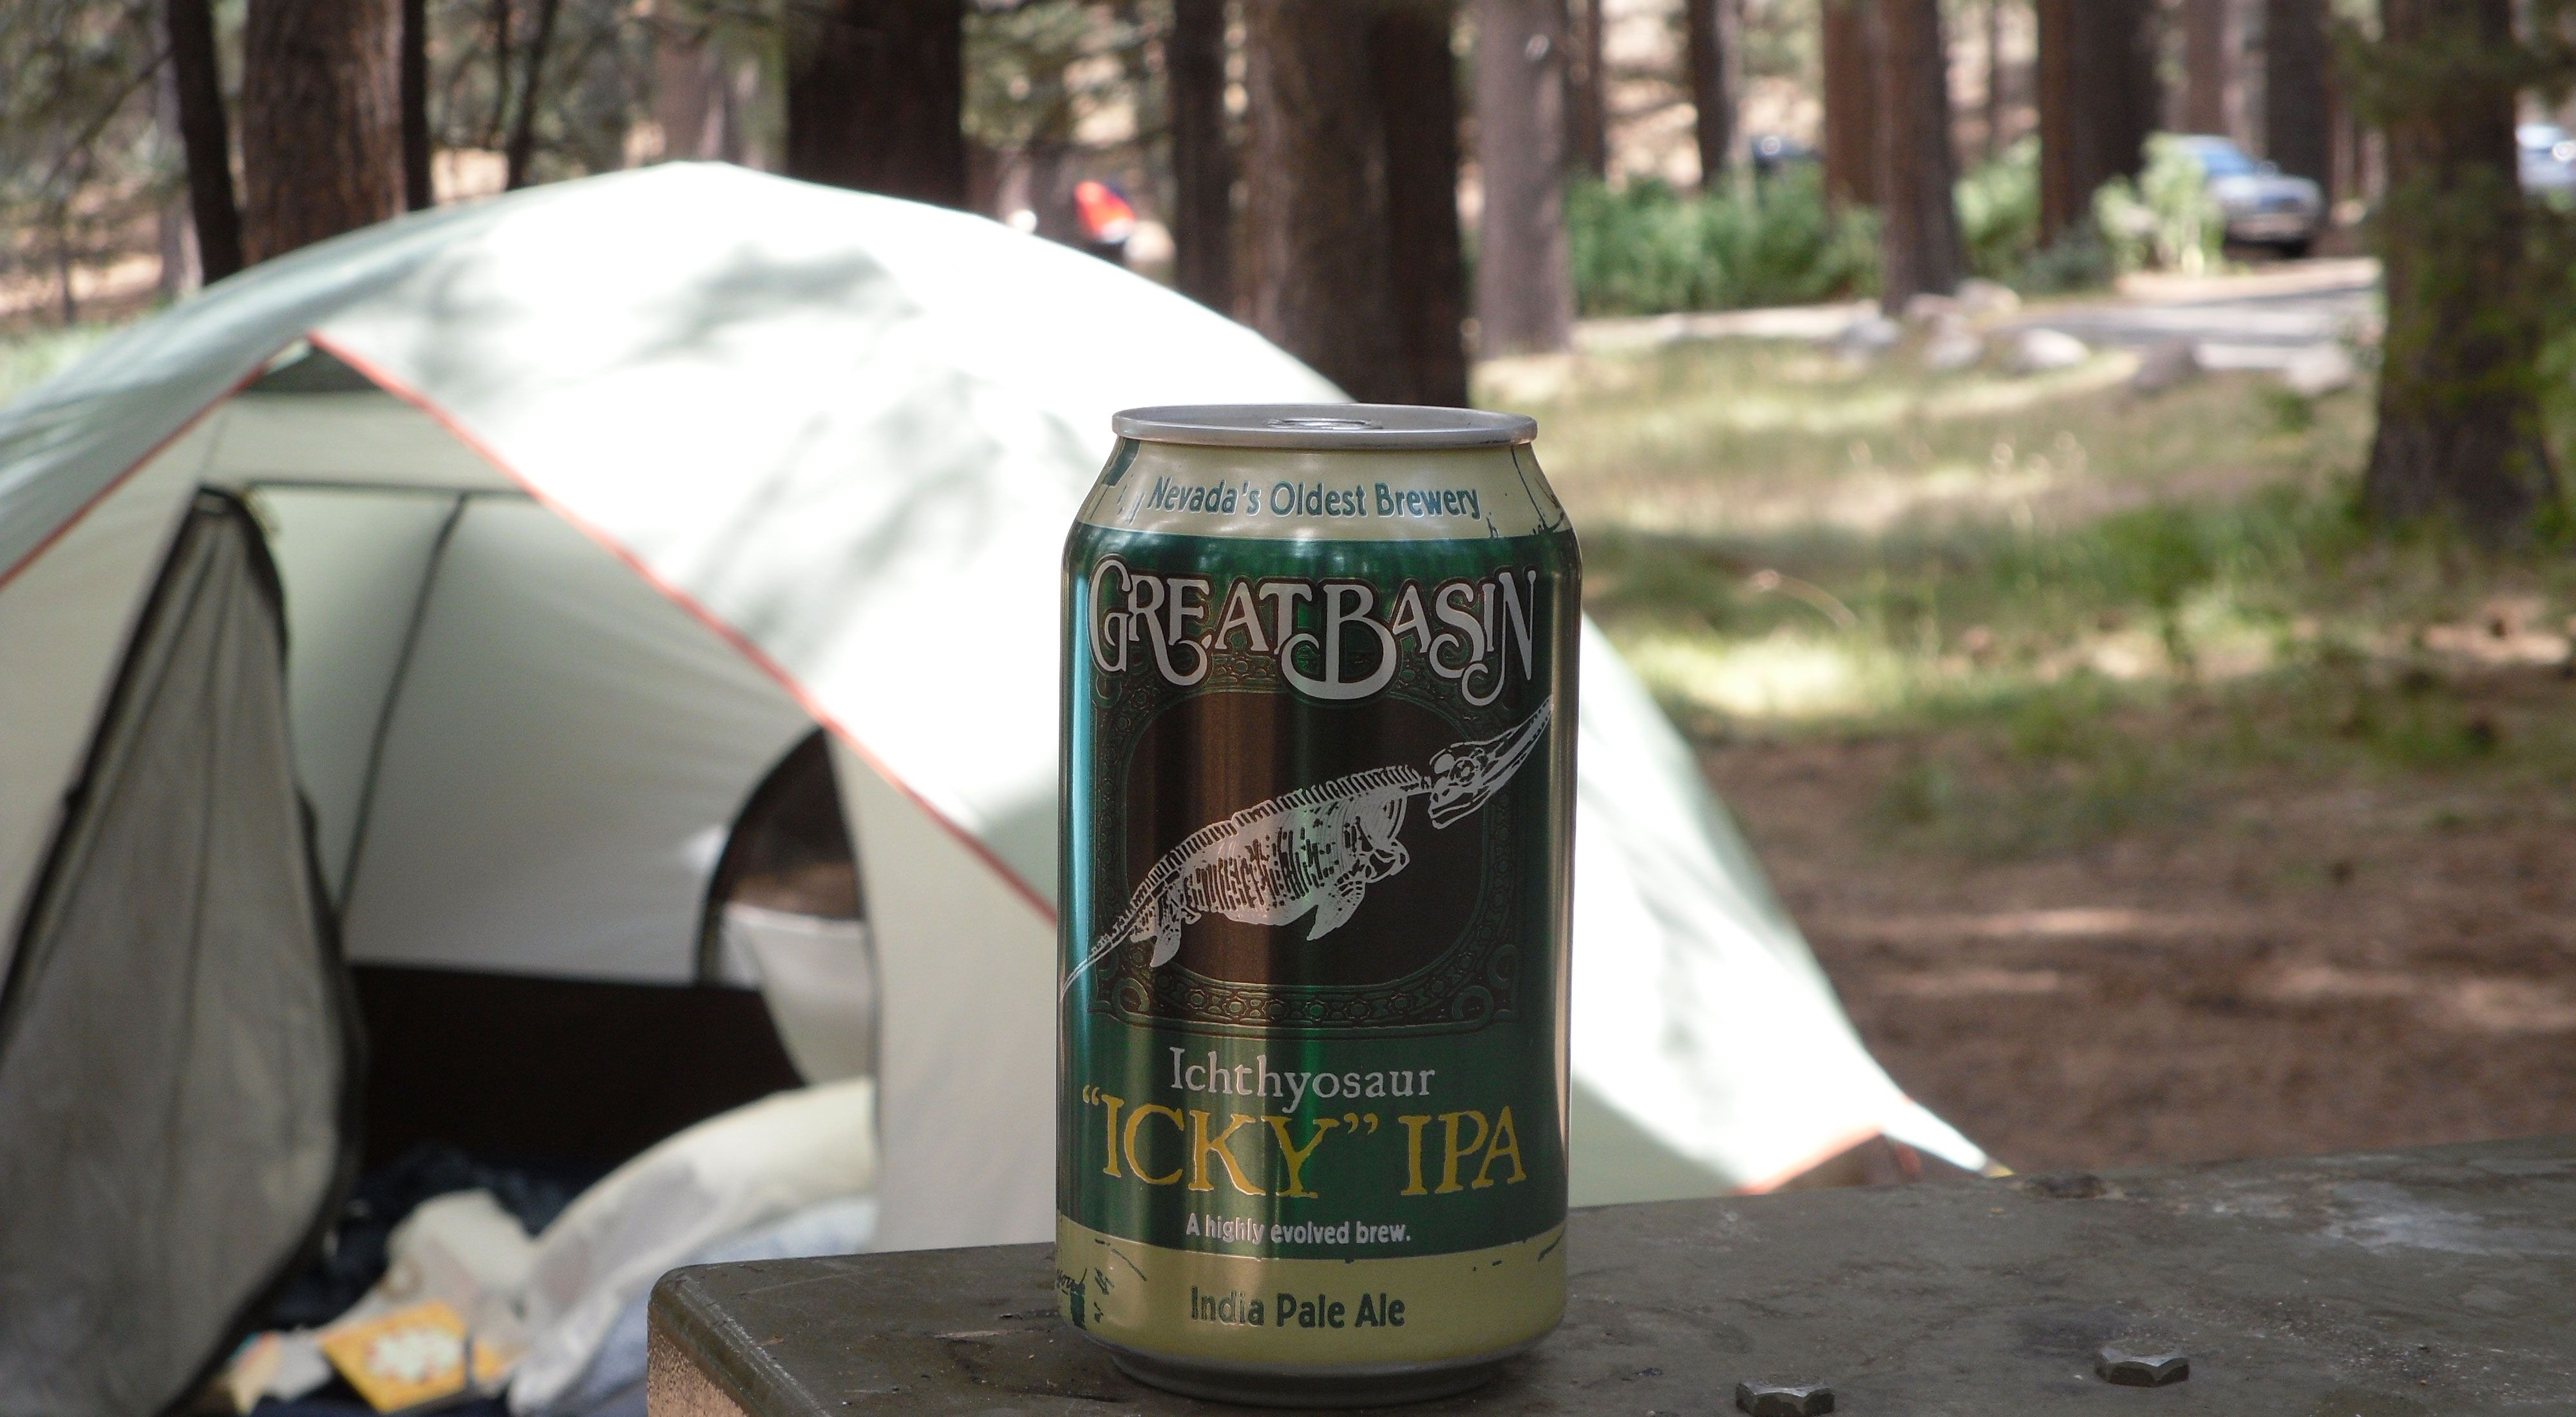 Camping with an IPA from OktoberForest participant brewery Great Basin in Nevada.